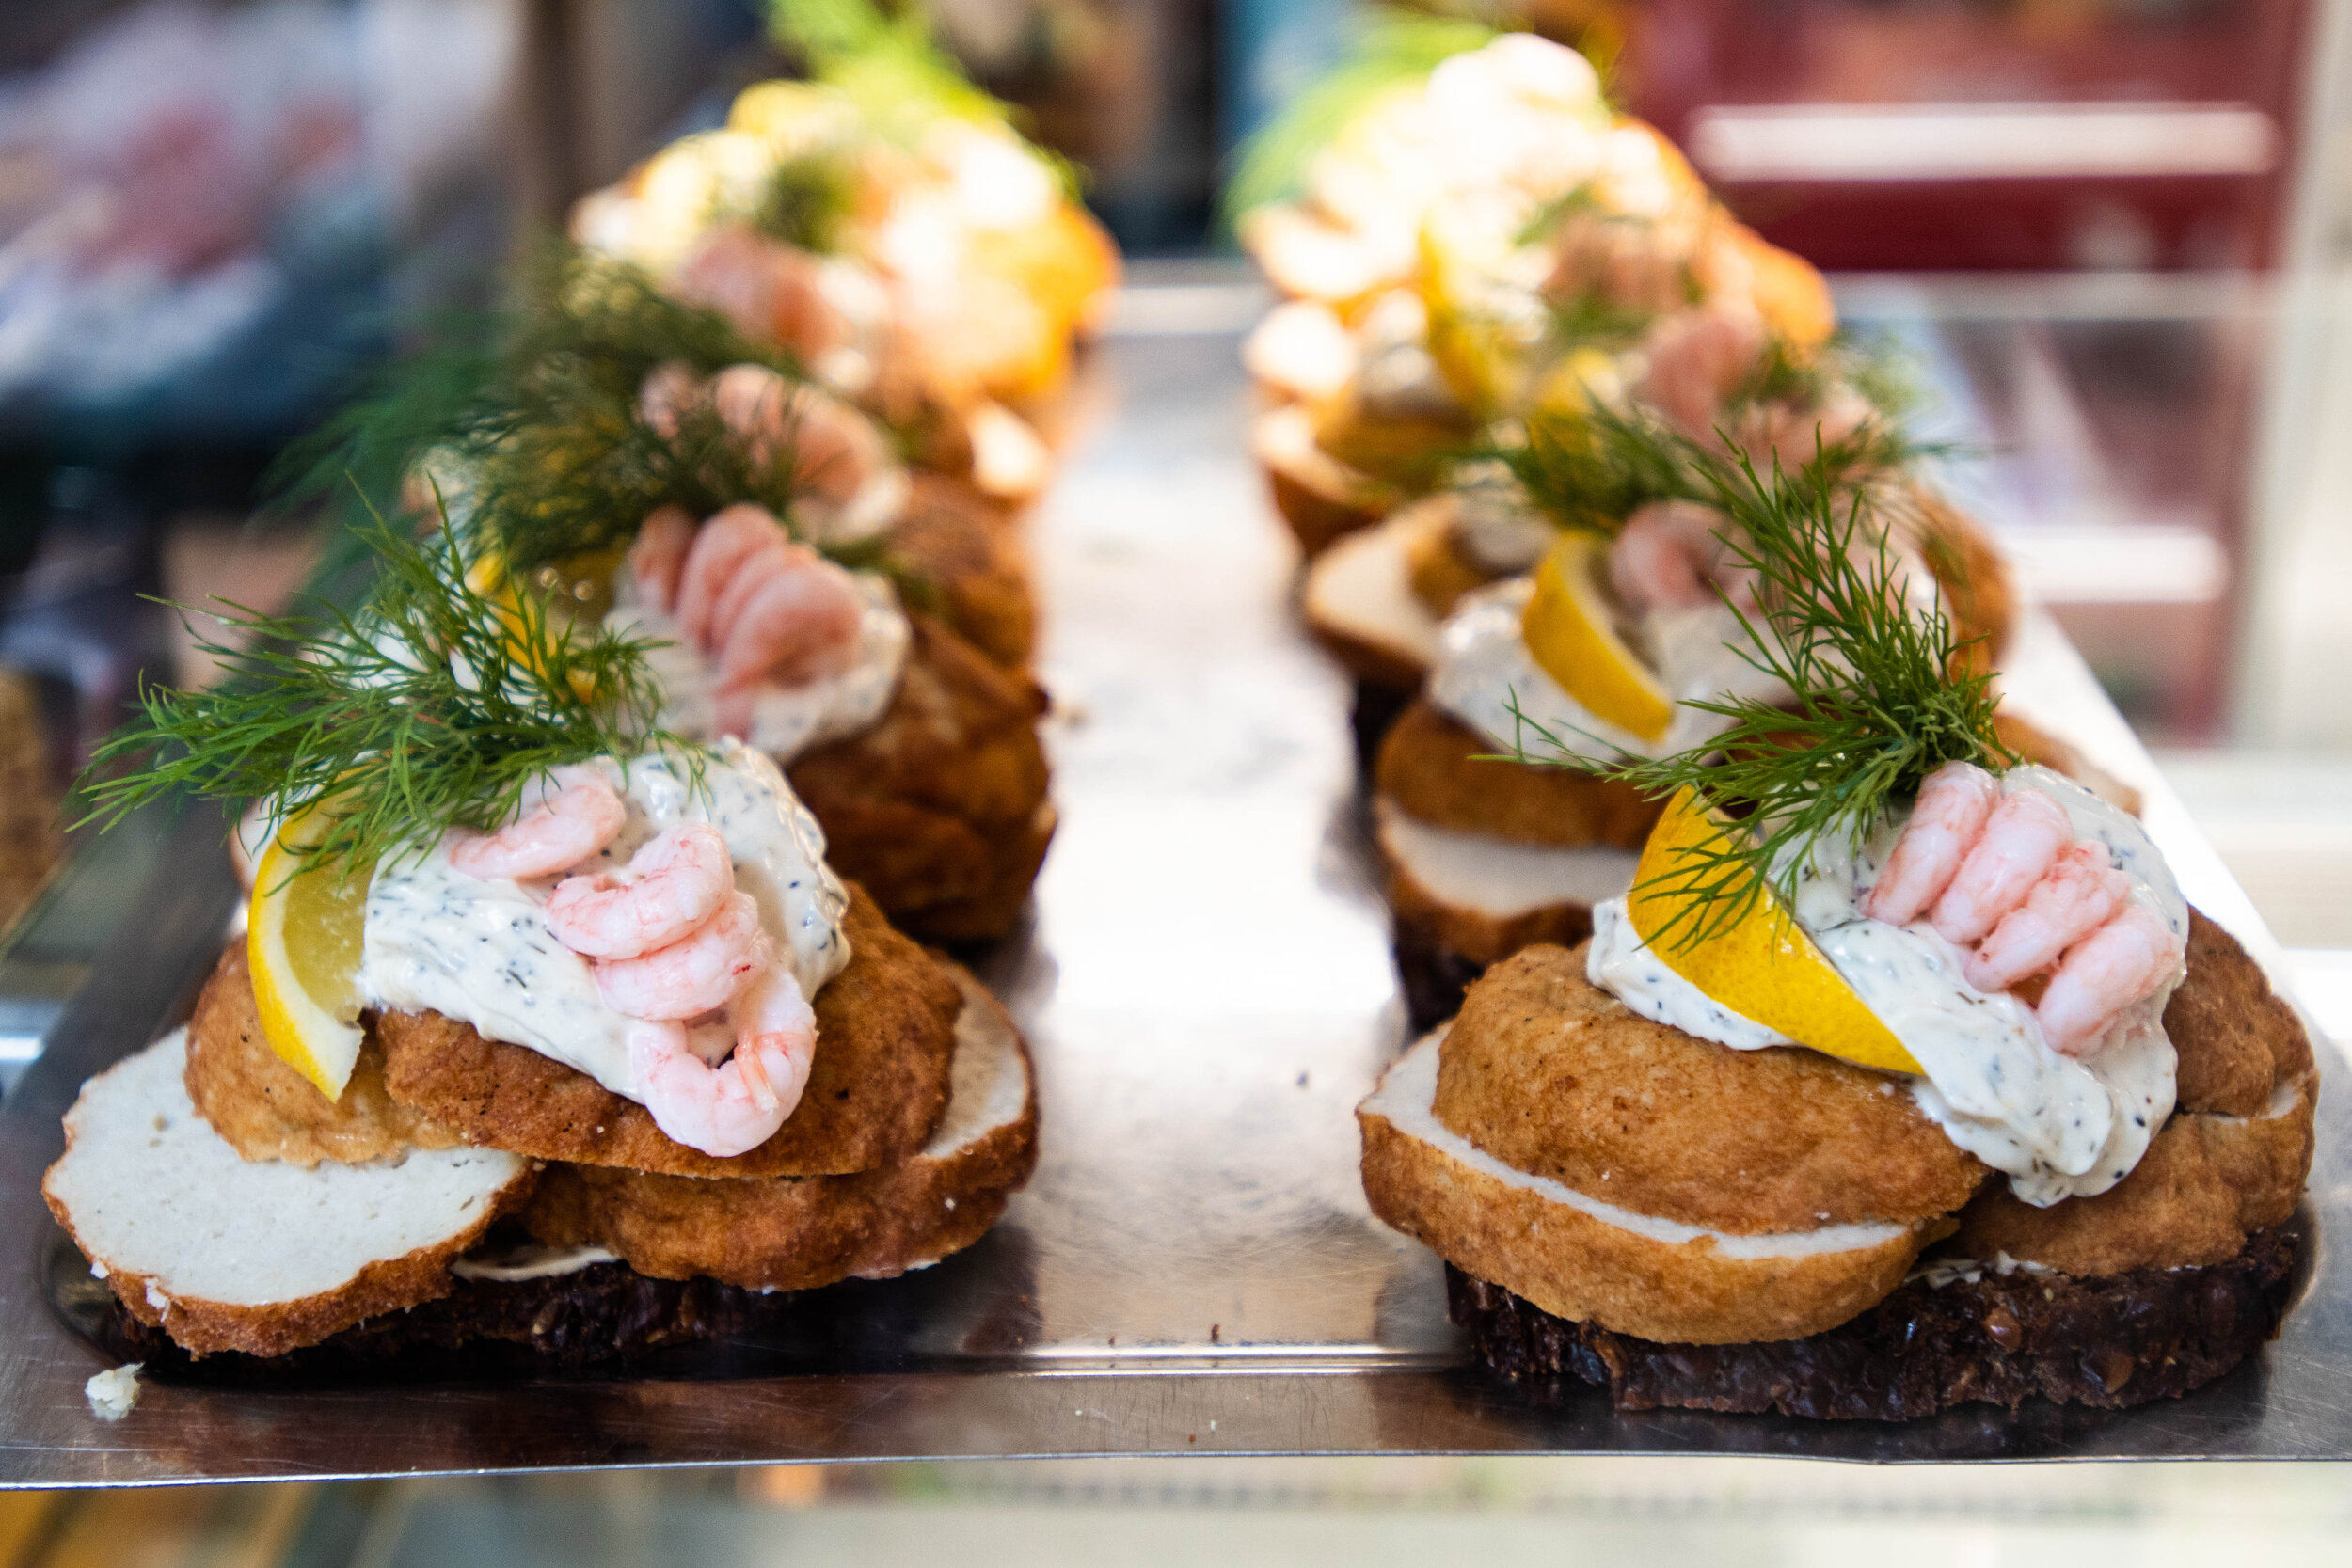 If nothing then gastronomy is the reason to visit Copenhagen.